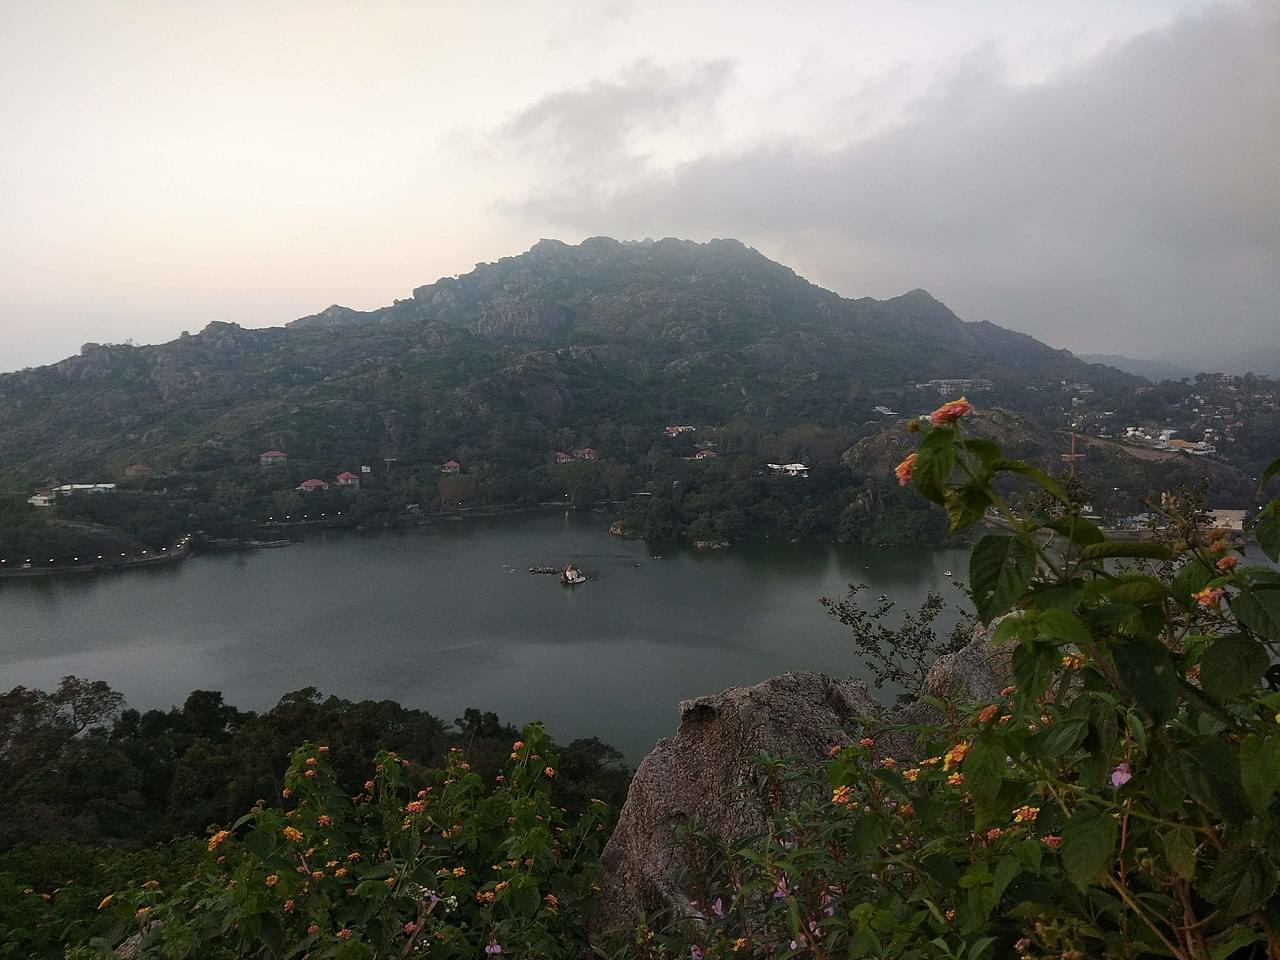 Blissful-Mount-Abu-Tour-Package-with-Udaipur-&-Jodhpur-JustWravel-1597391067-4.jpg